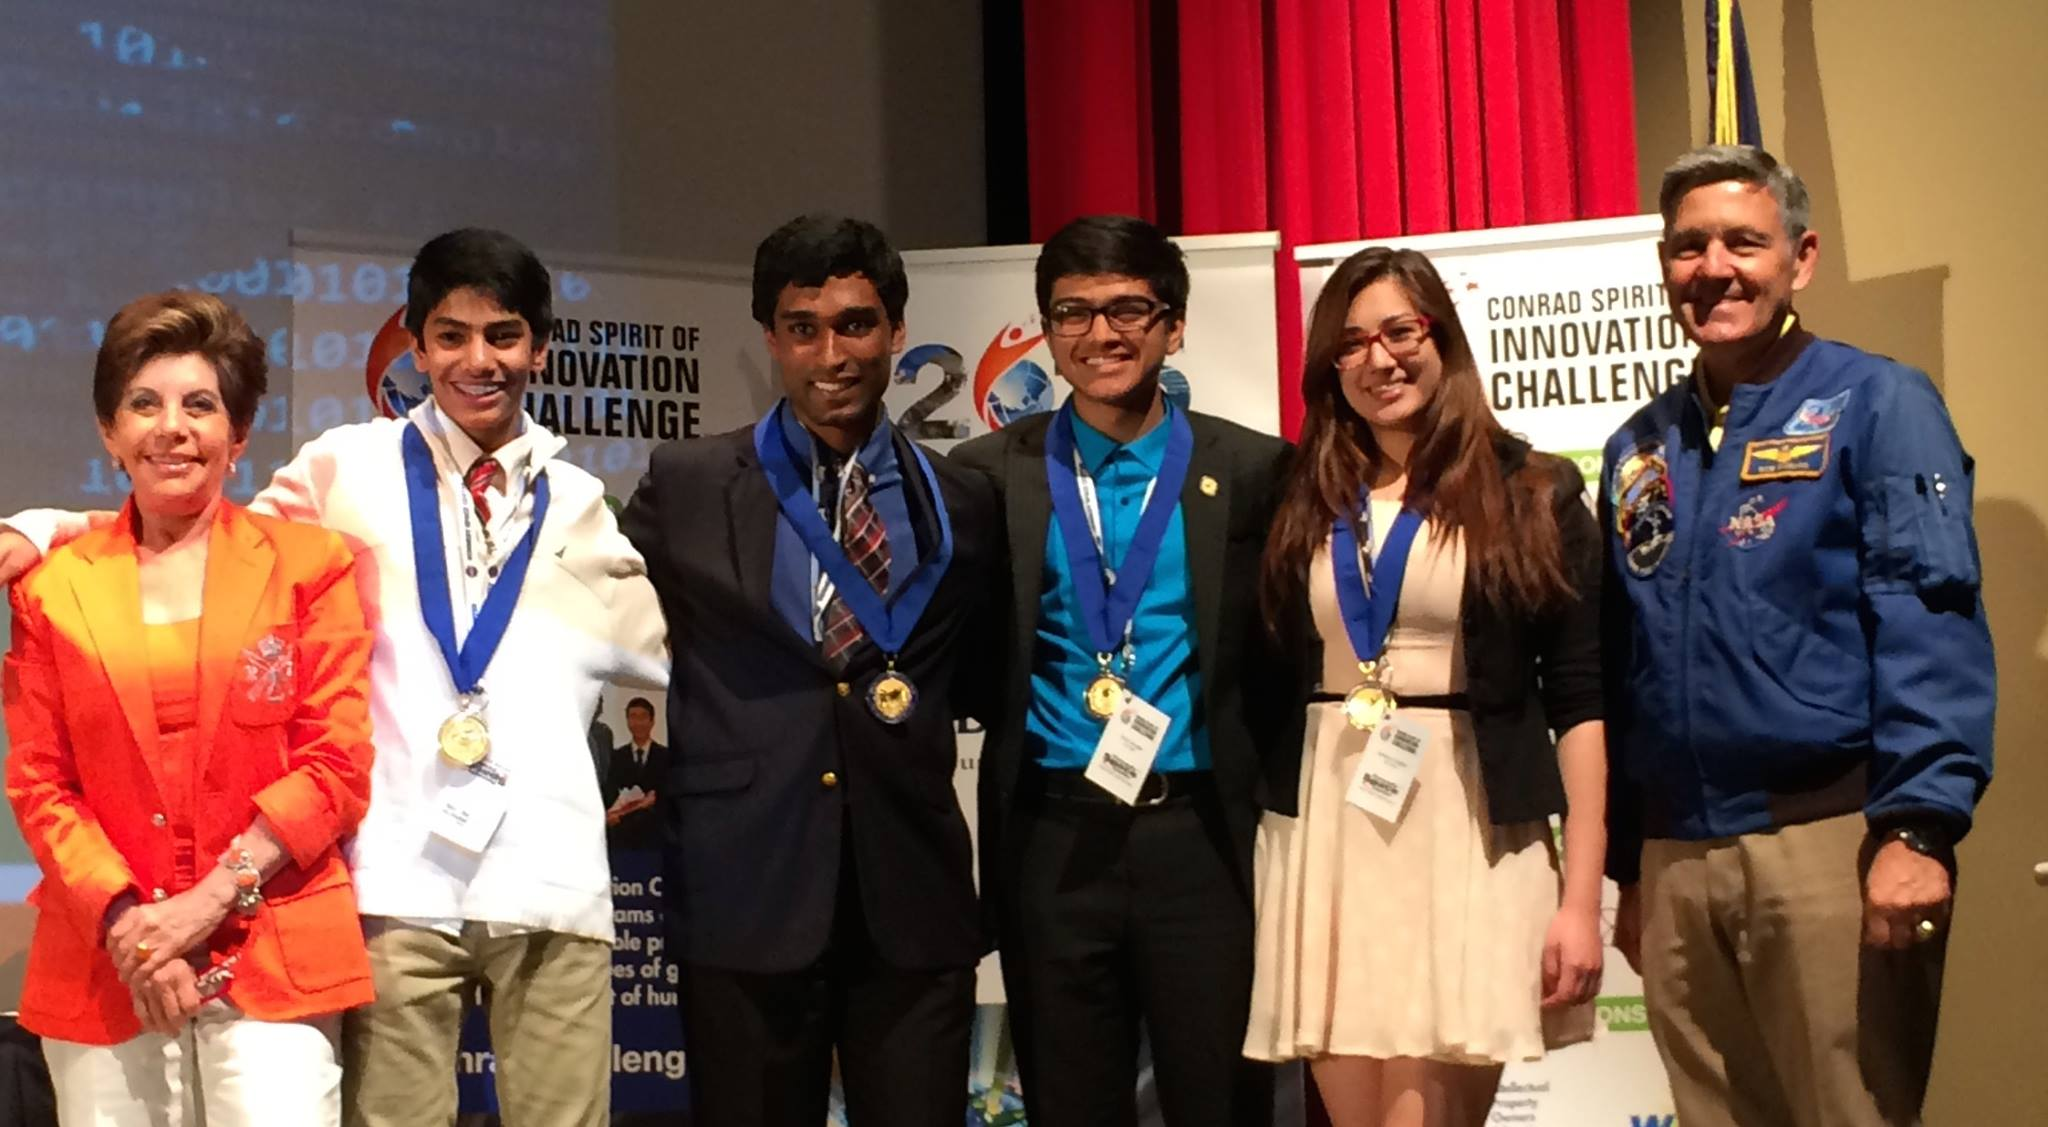 From left to right: founder and chairman Nancy Conrad, sophomore Rohan Suri, junior Kevin Livingstone, sophomore Varun Iyengar, junior Claire Scoggins and former NASA astronaunt Robert Cabana celebrate the team behind Suri Labs being recognized as Pete Conrad scholars.